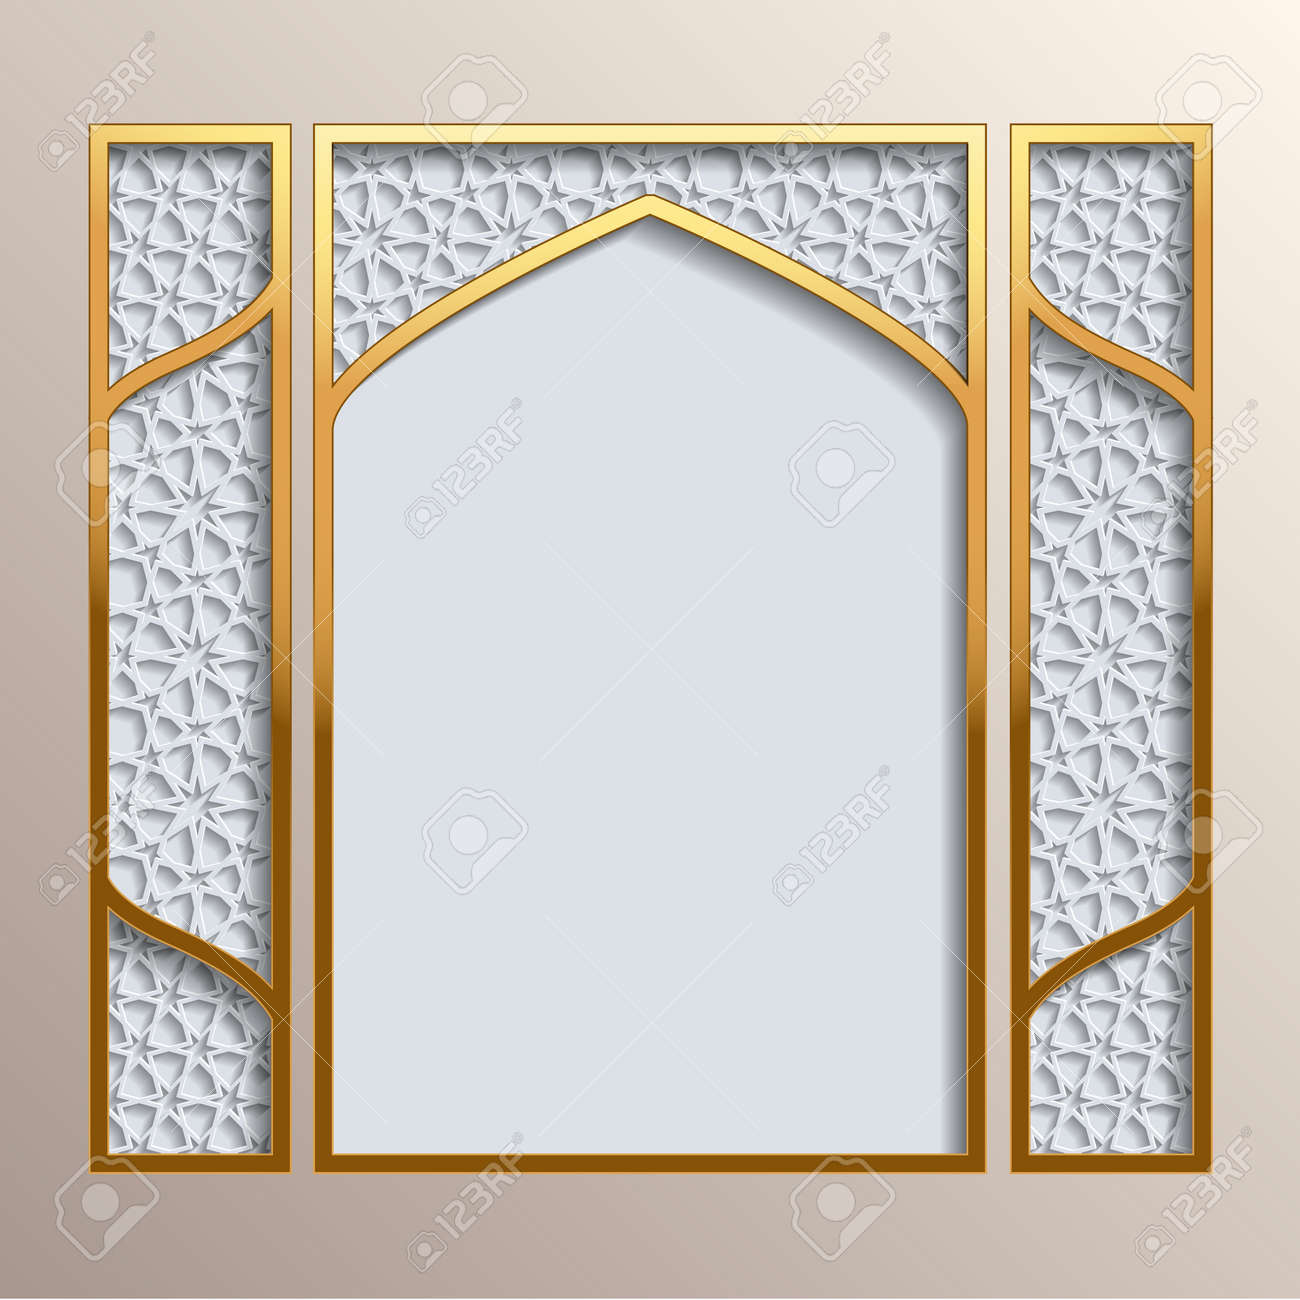 Islamic greeting card golden frame with 3d background with islamic greeting card golden frame with 3d background with different girih patterns greeting card kristyandbryce Image collections